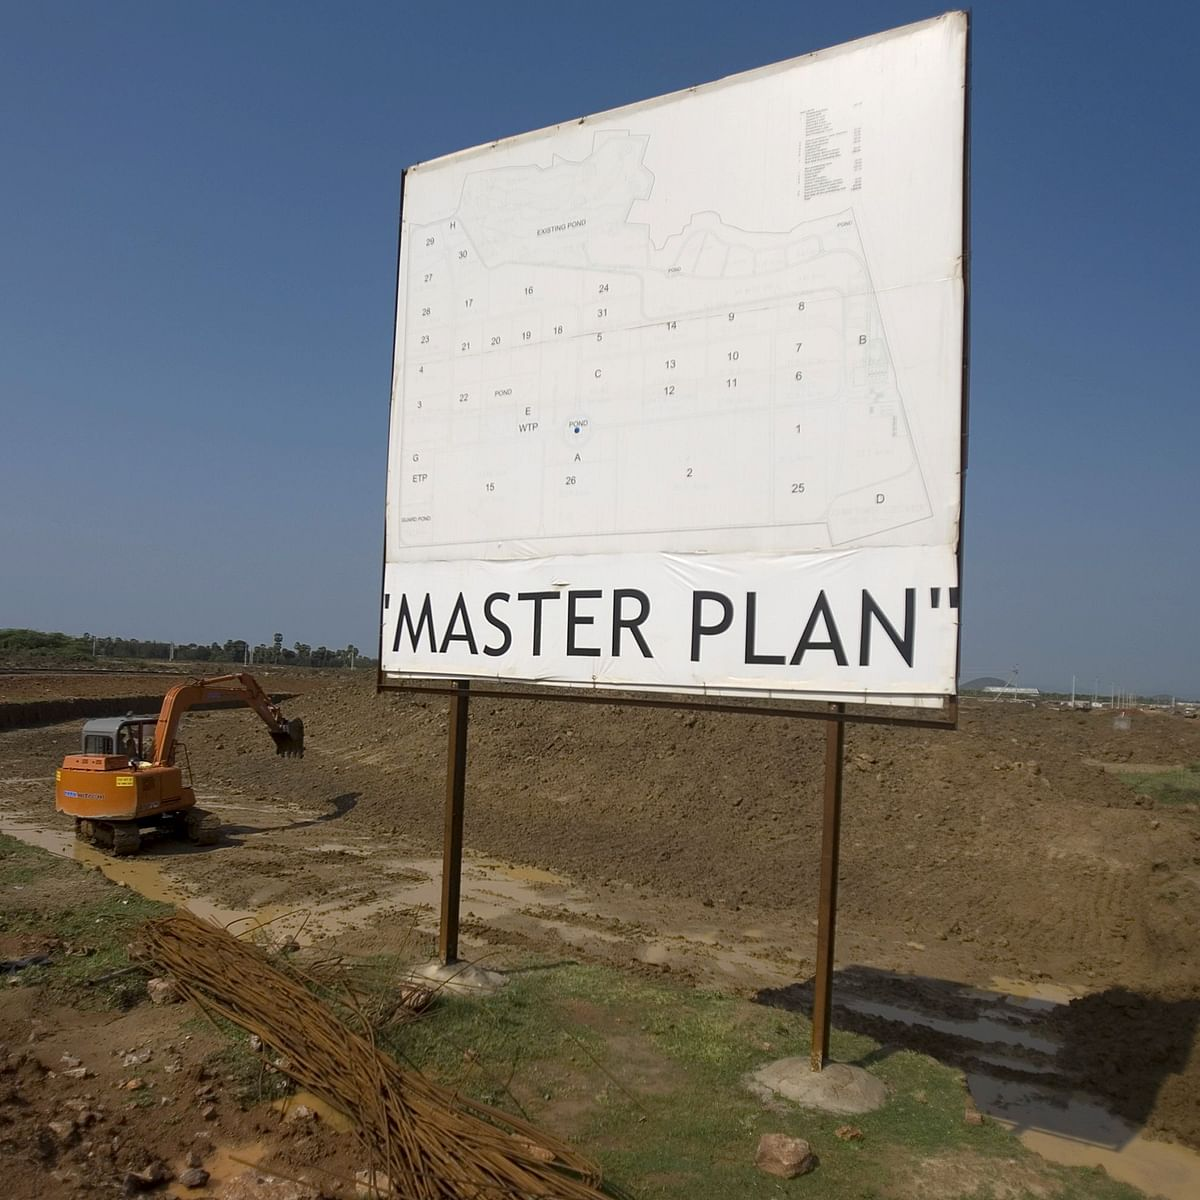 Developed Land Sold As Plots Will Attract GST, Says AAR